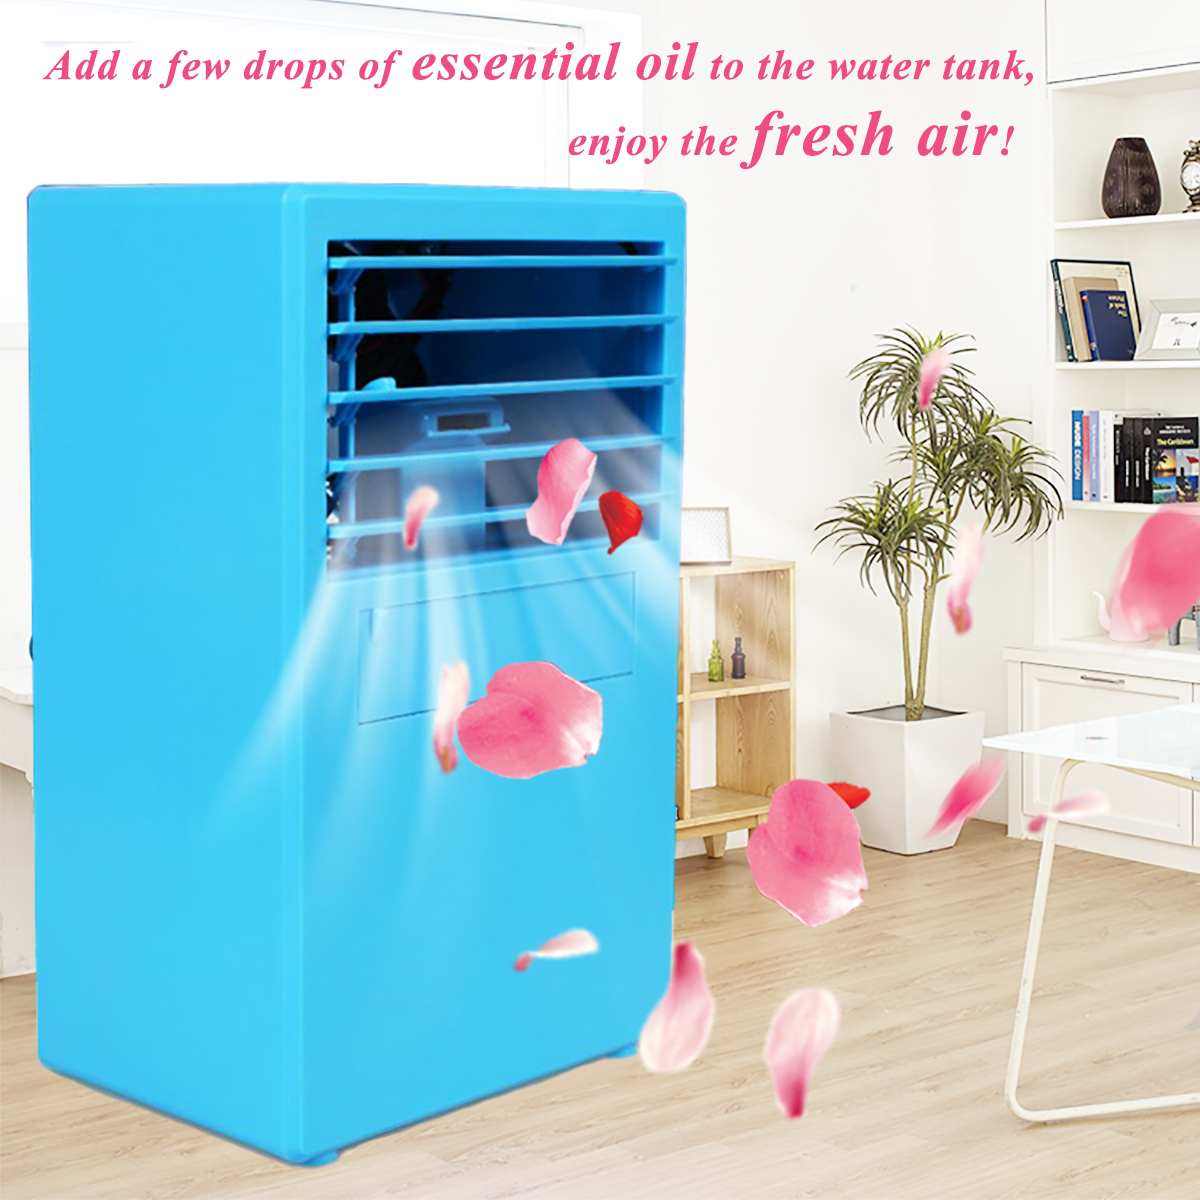 Portable 24V 18W 3 Speed Mini Spray Humidification Air Conditioning Fan 2 Colors 5 Leaf Cooling FanPortable 24V 18W 3 Speed Mini Spray Humidification Air Conditioning Fan 2 Colors 5 Leaf Cooling Fan